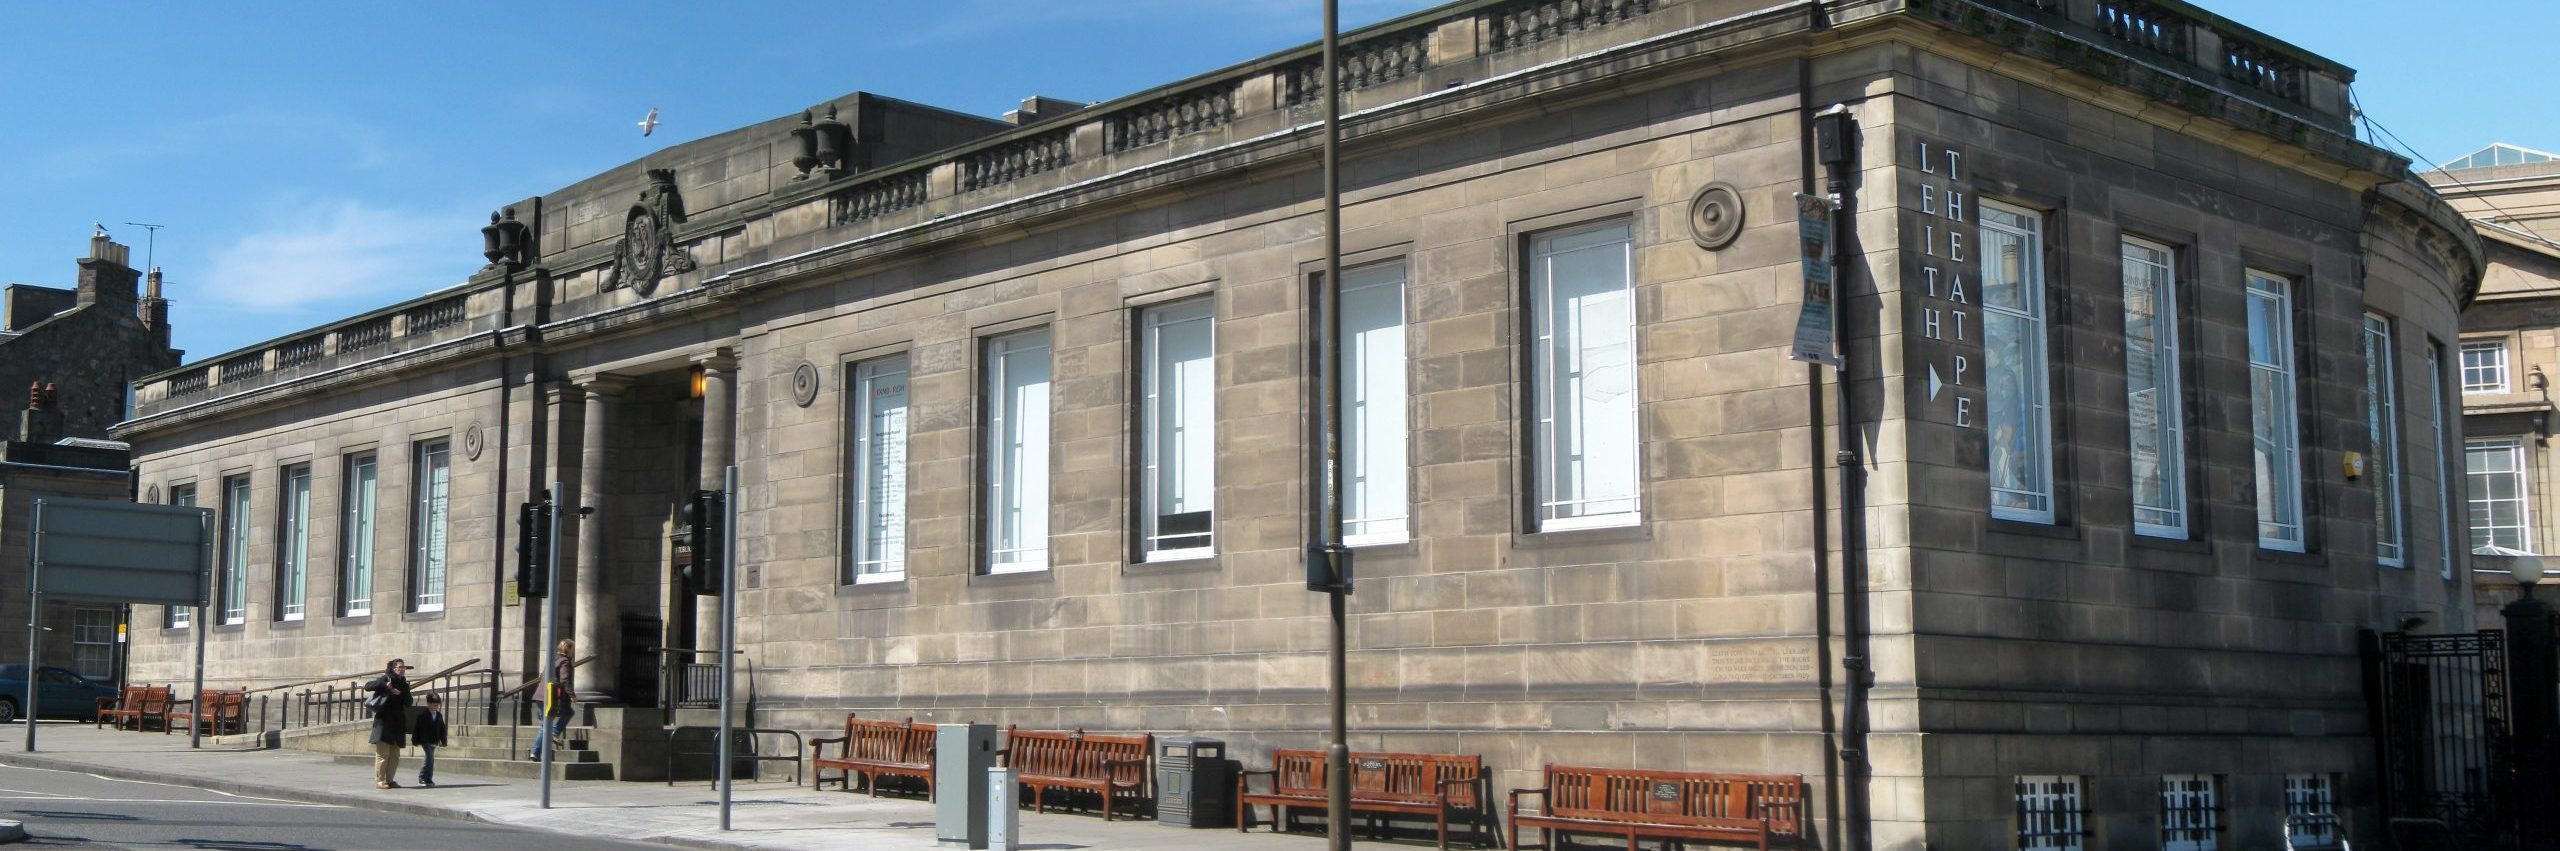 Advice surgerery; Every Monday 5pm to 6pm at Leith Library, 28-30 Ferry Rd, Edinburgh